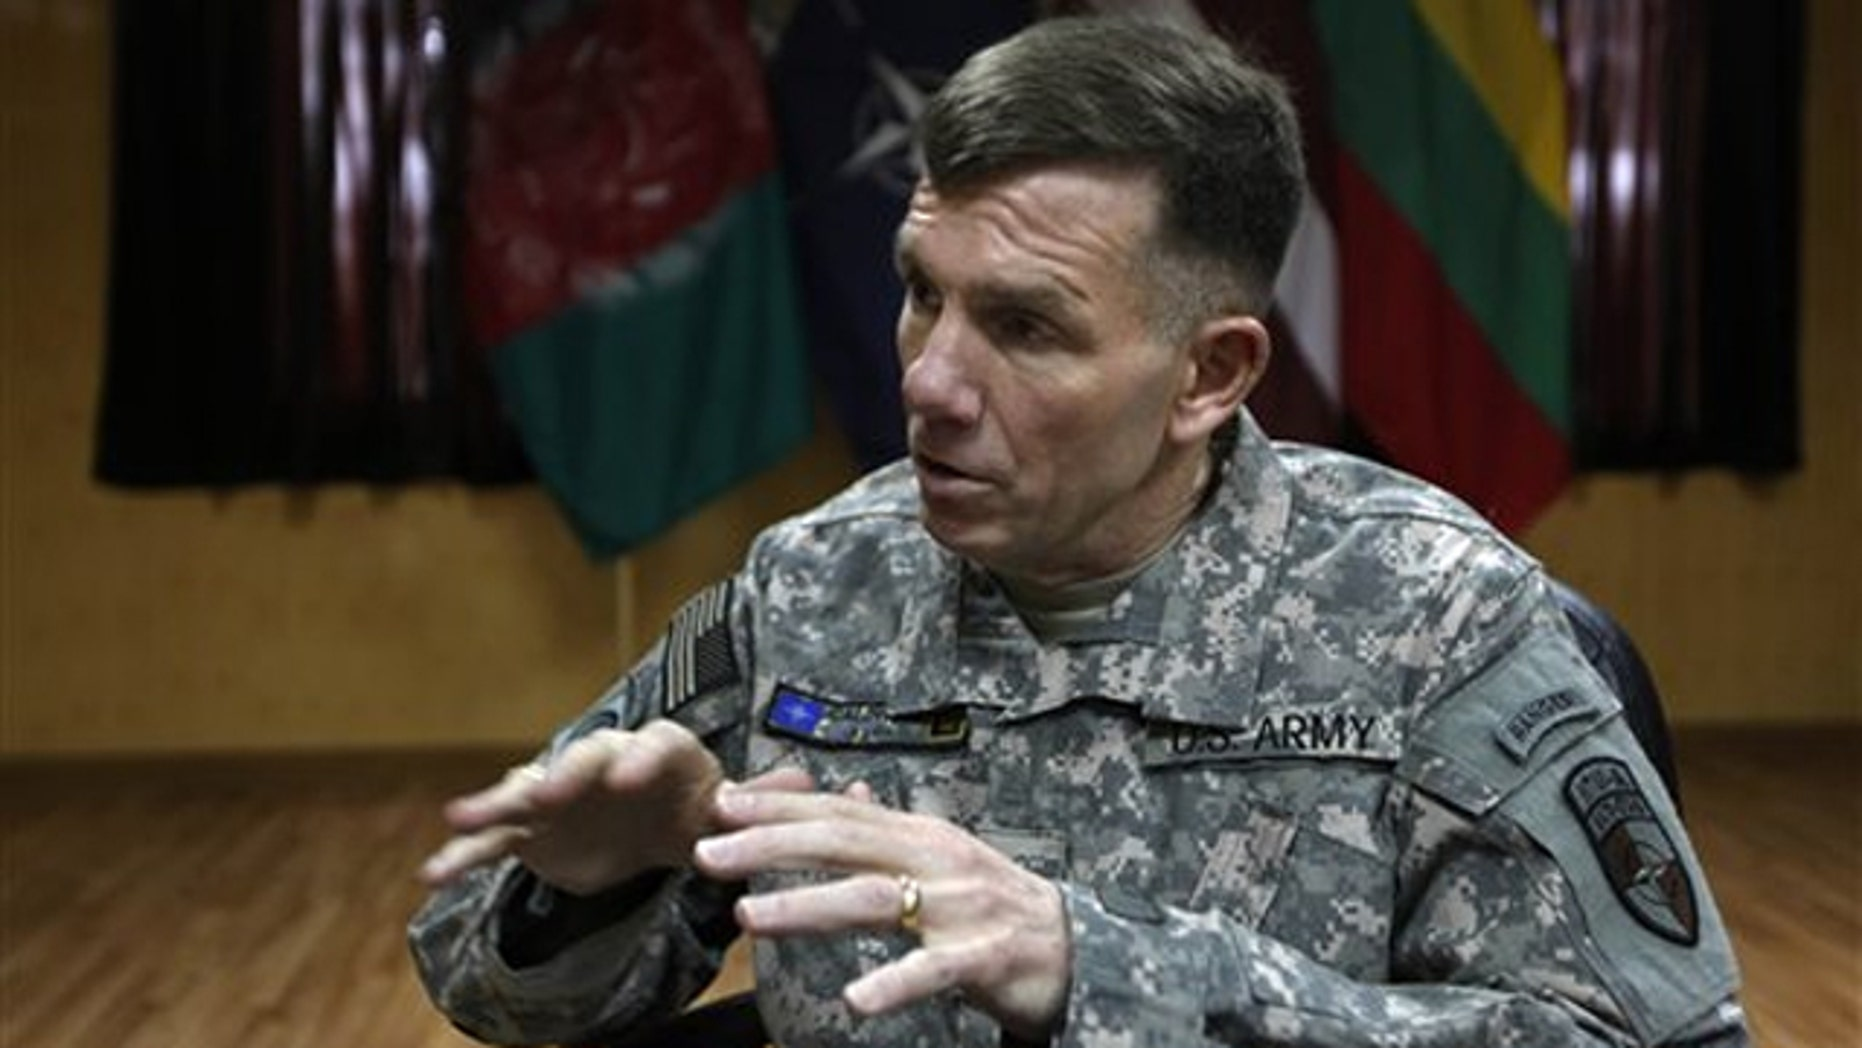 Lt. Gen. William Caldwell, the commander of NATO's mission to train Afghan policemen and soldiers, speaks during an interview with The Associated Press in Kabul, Afghanistan Feb. 12.